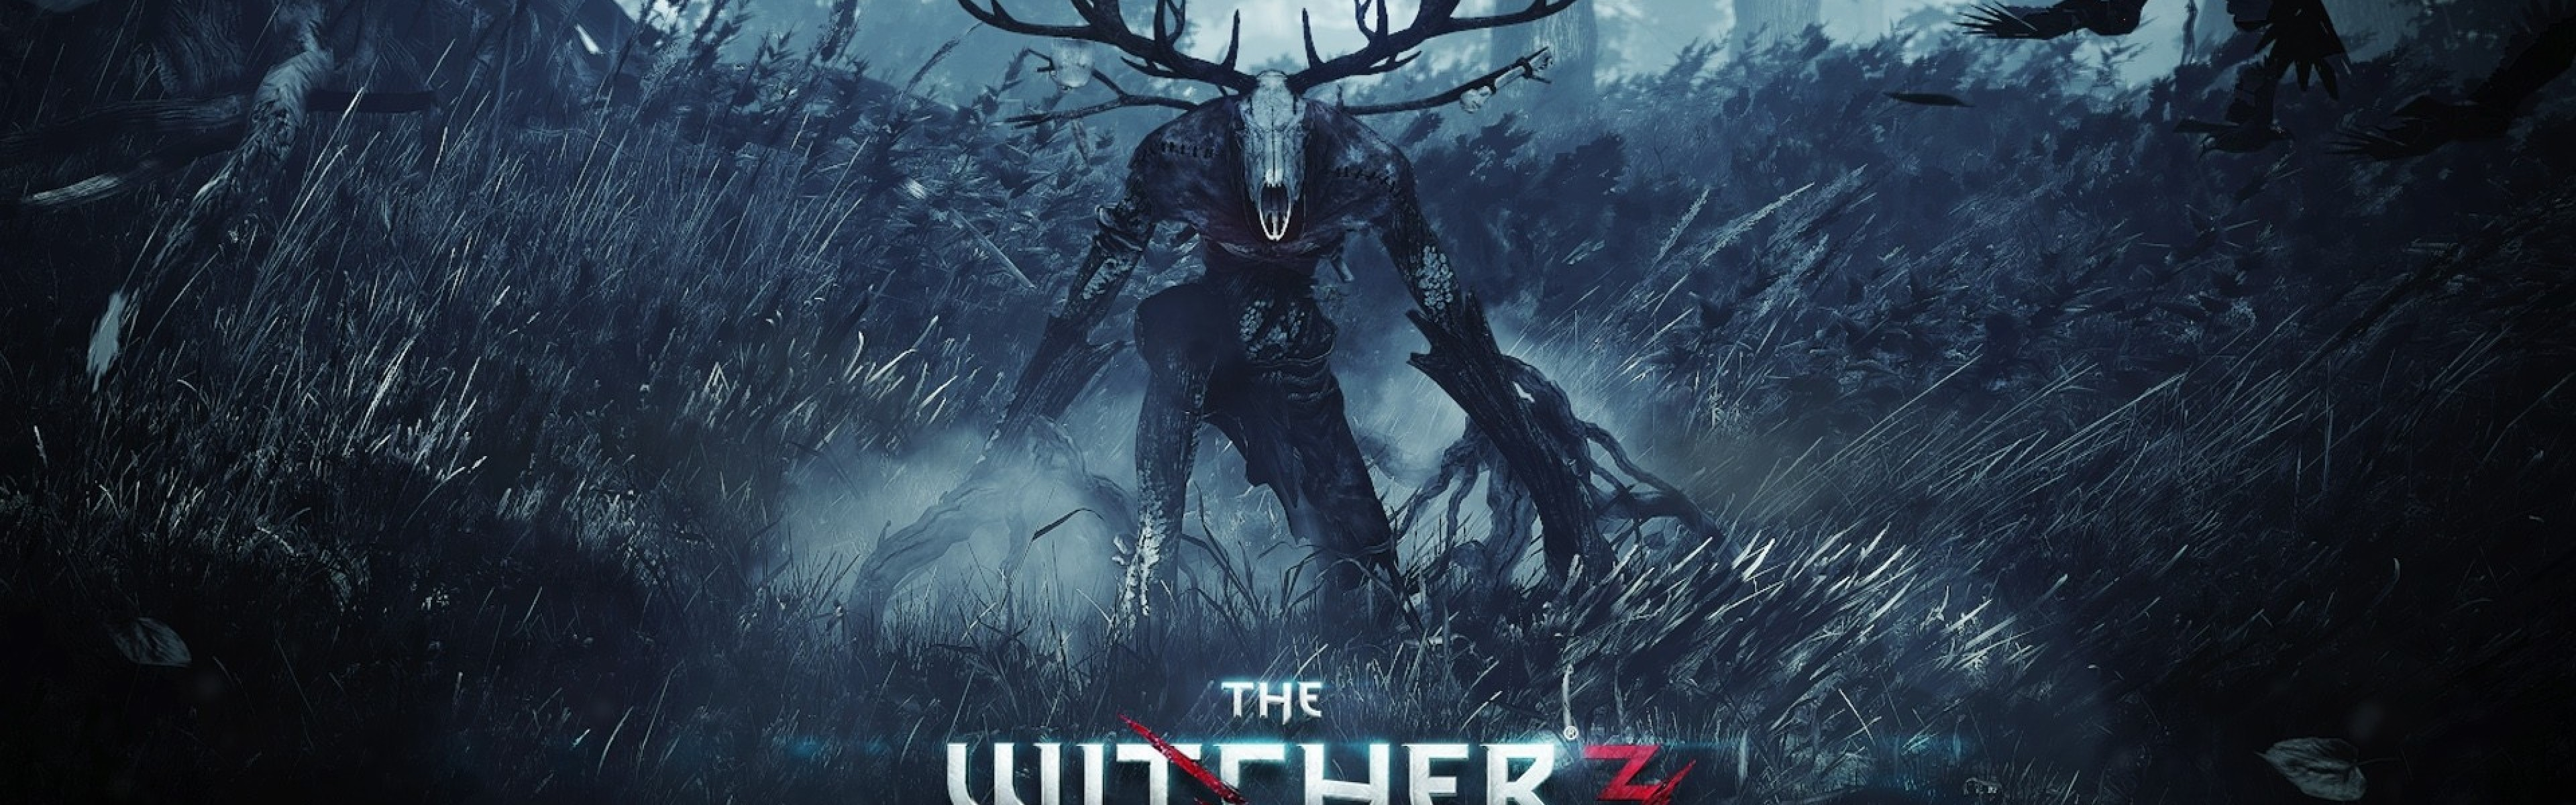 Wallpaper the witcher 3 wild hunt, final part, pc, playstation 4,